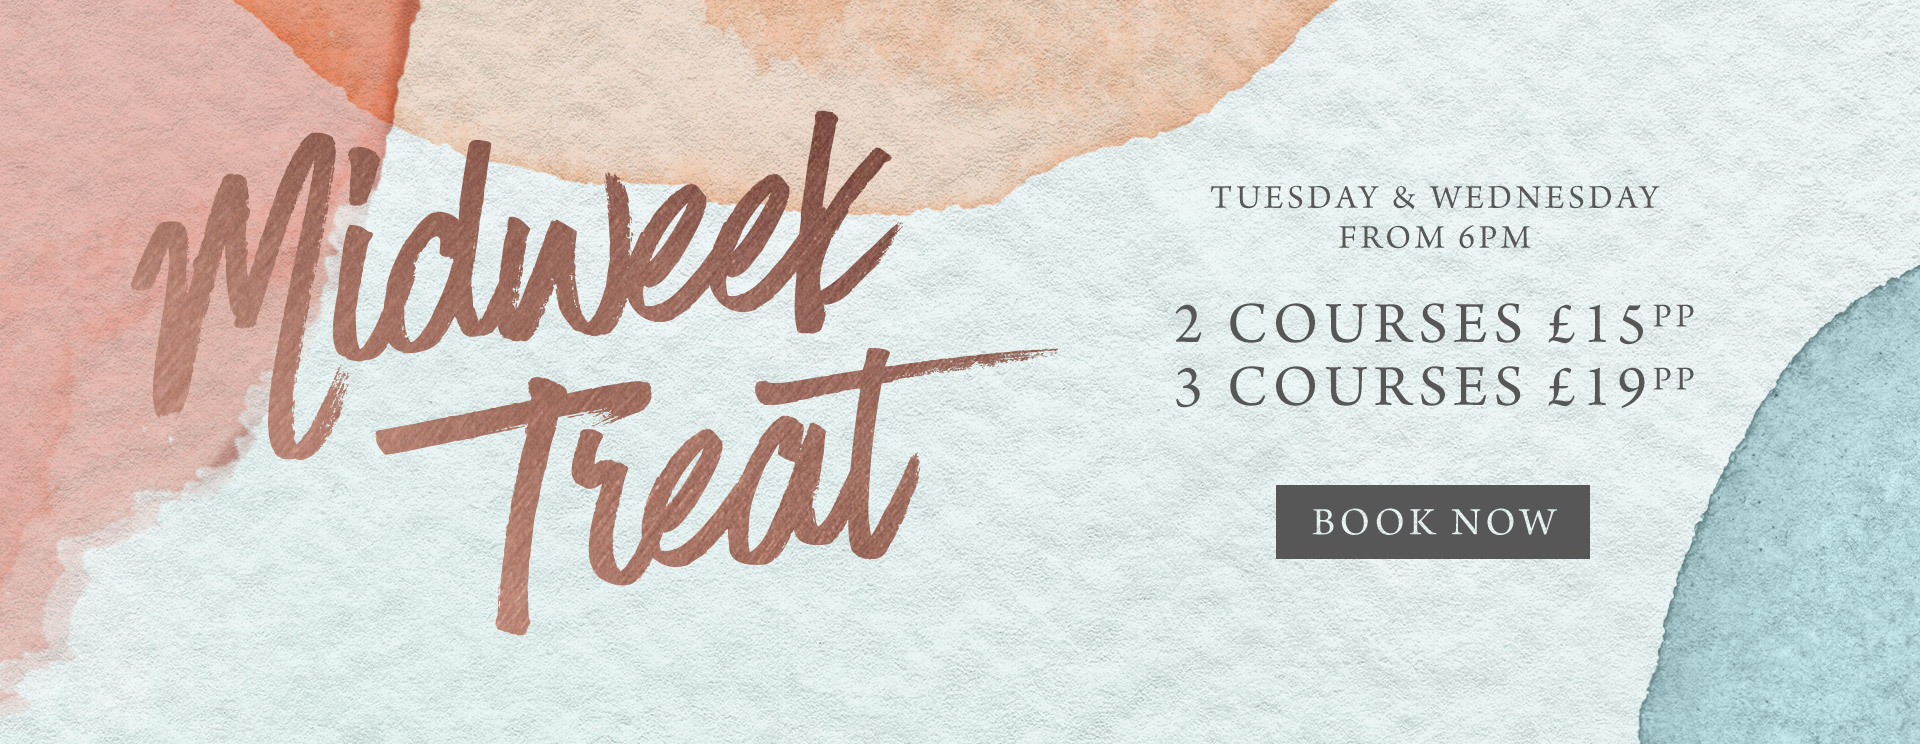 Midweek treat at The Spade Oak - Book now